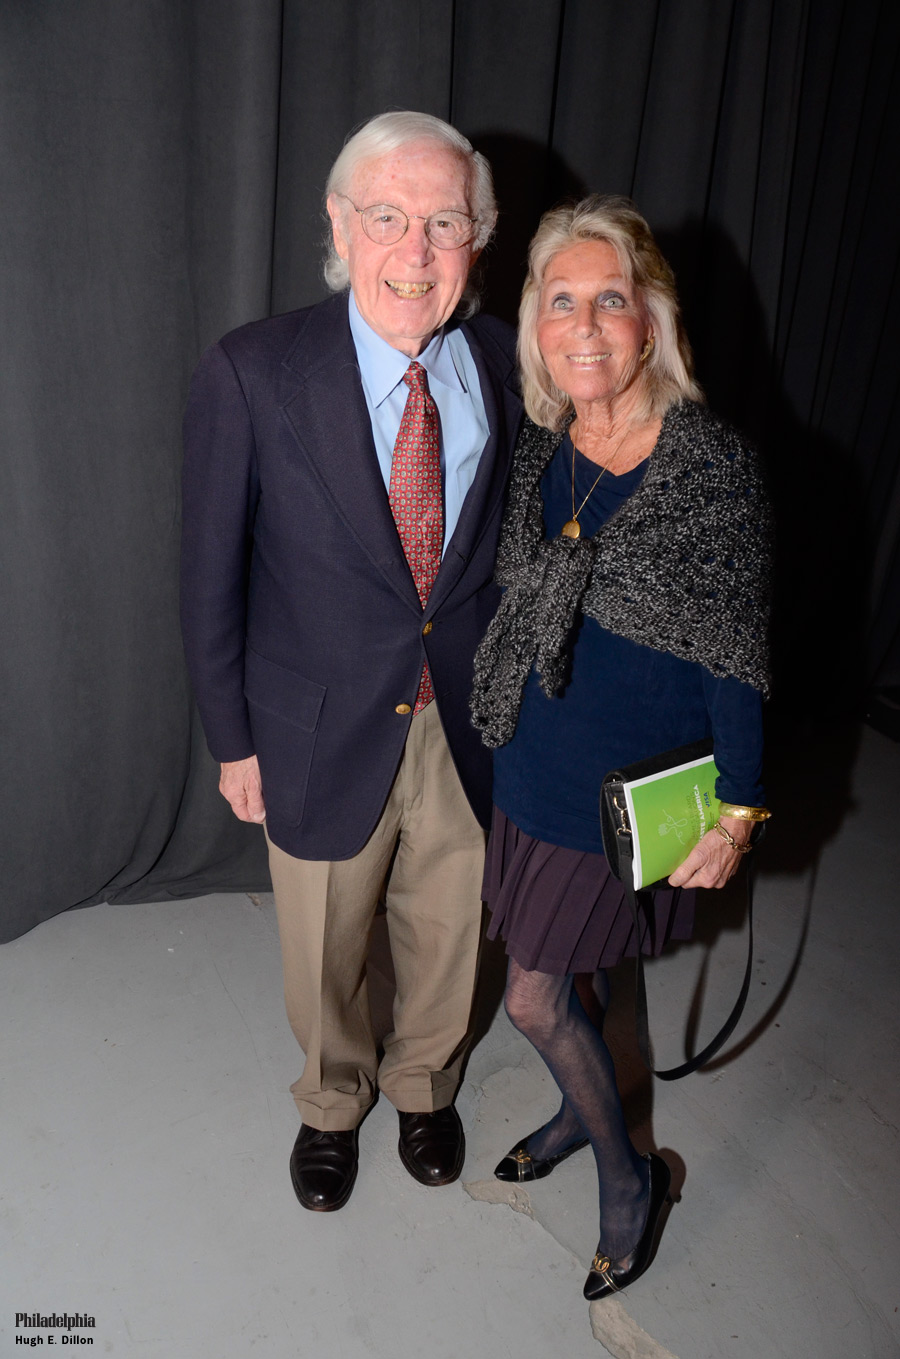 Victor and Sally Friedman were excited to experience the Legacy Dinner.